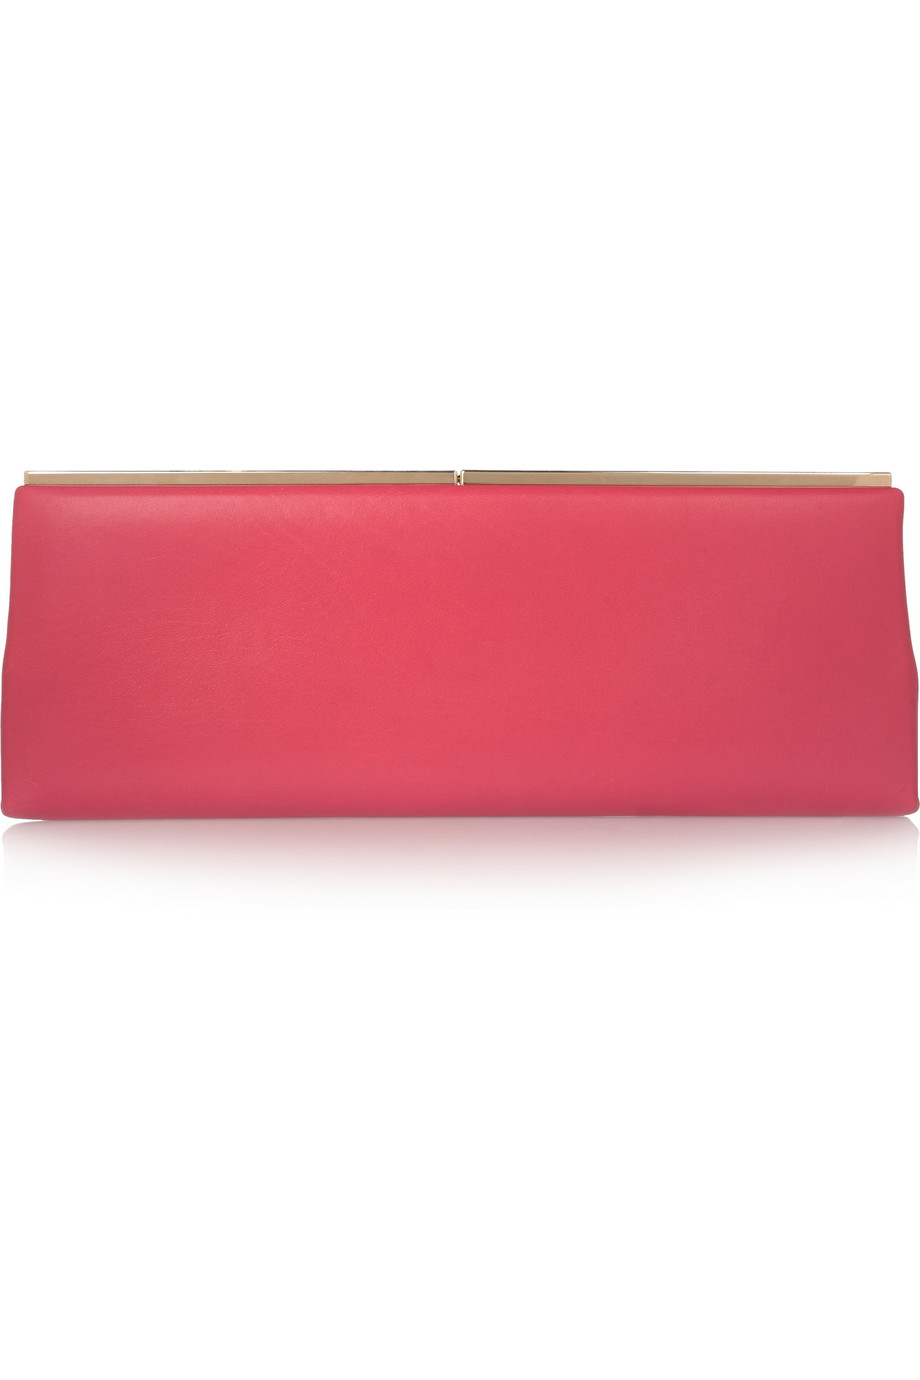 Jimmy Choo Leather clutch – 60% at THE OUTNET.COM